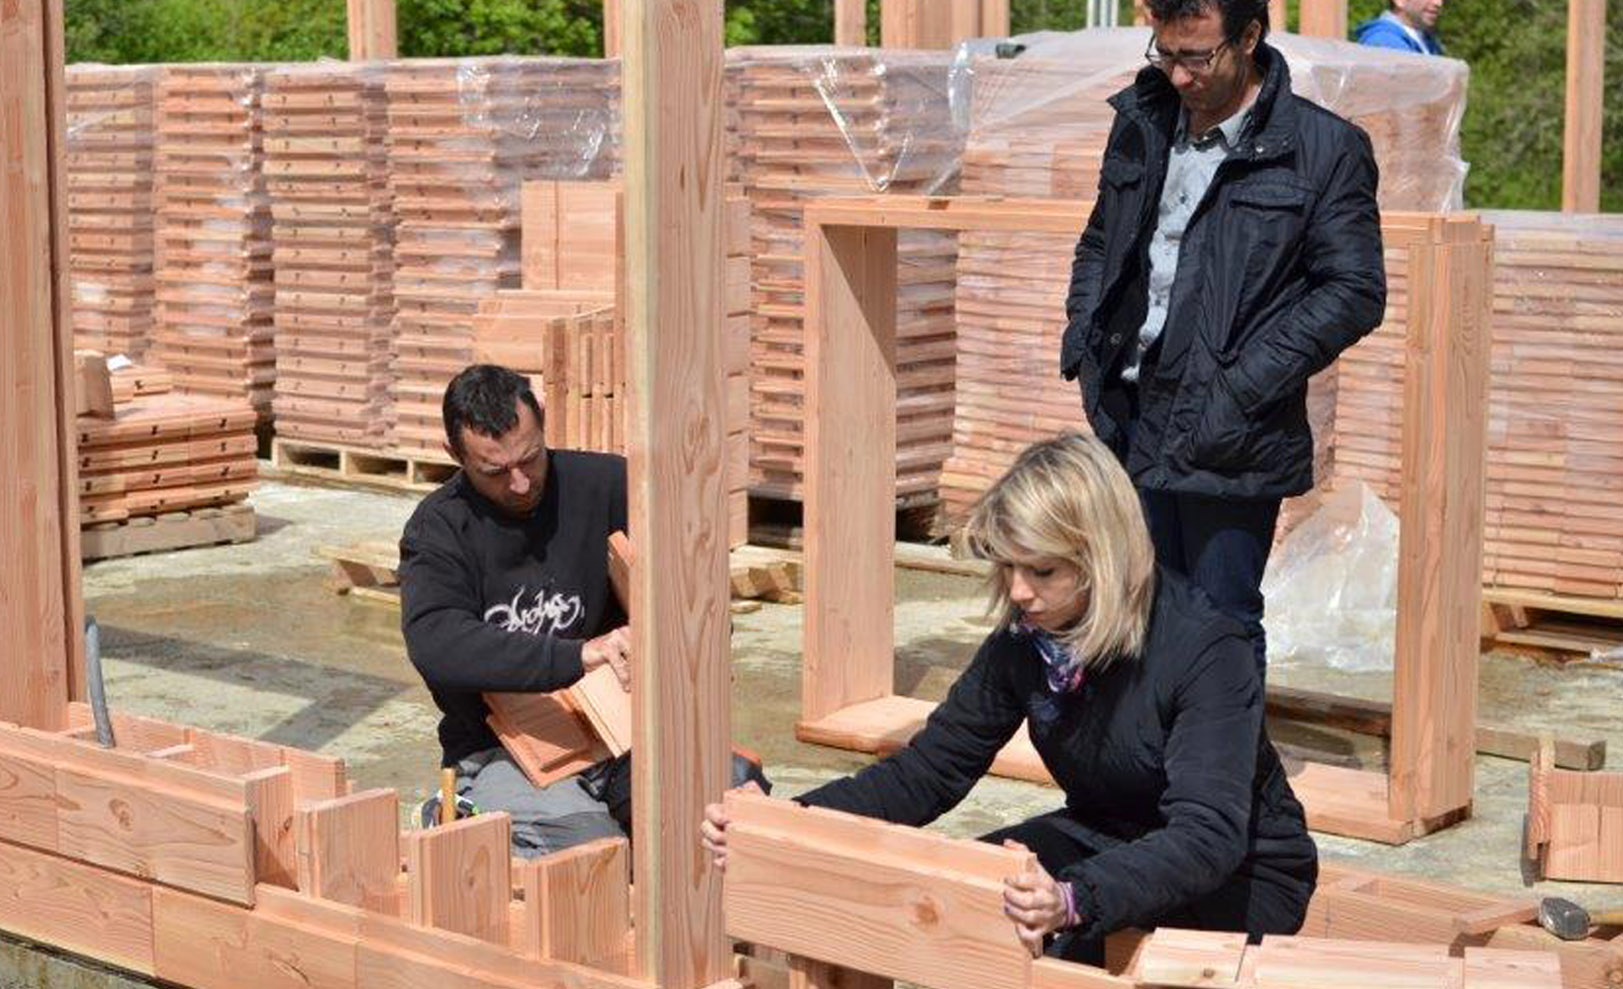 Life-Sized Lincoln Logs: Wooden Bricks Make Building a House Crazy Easy